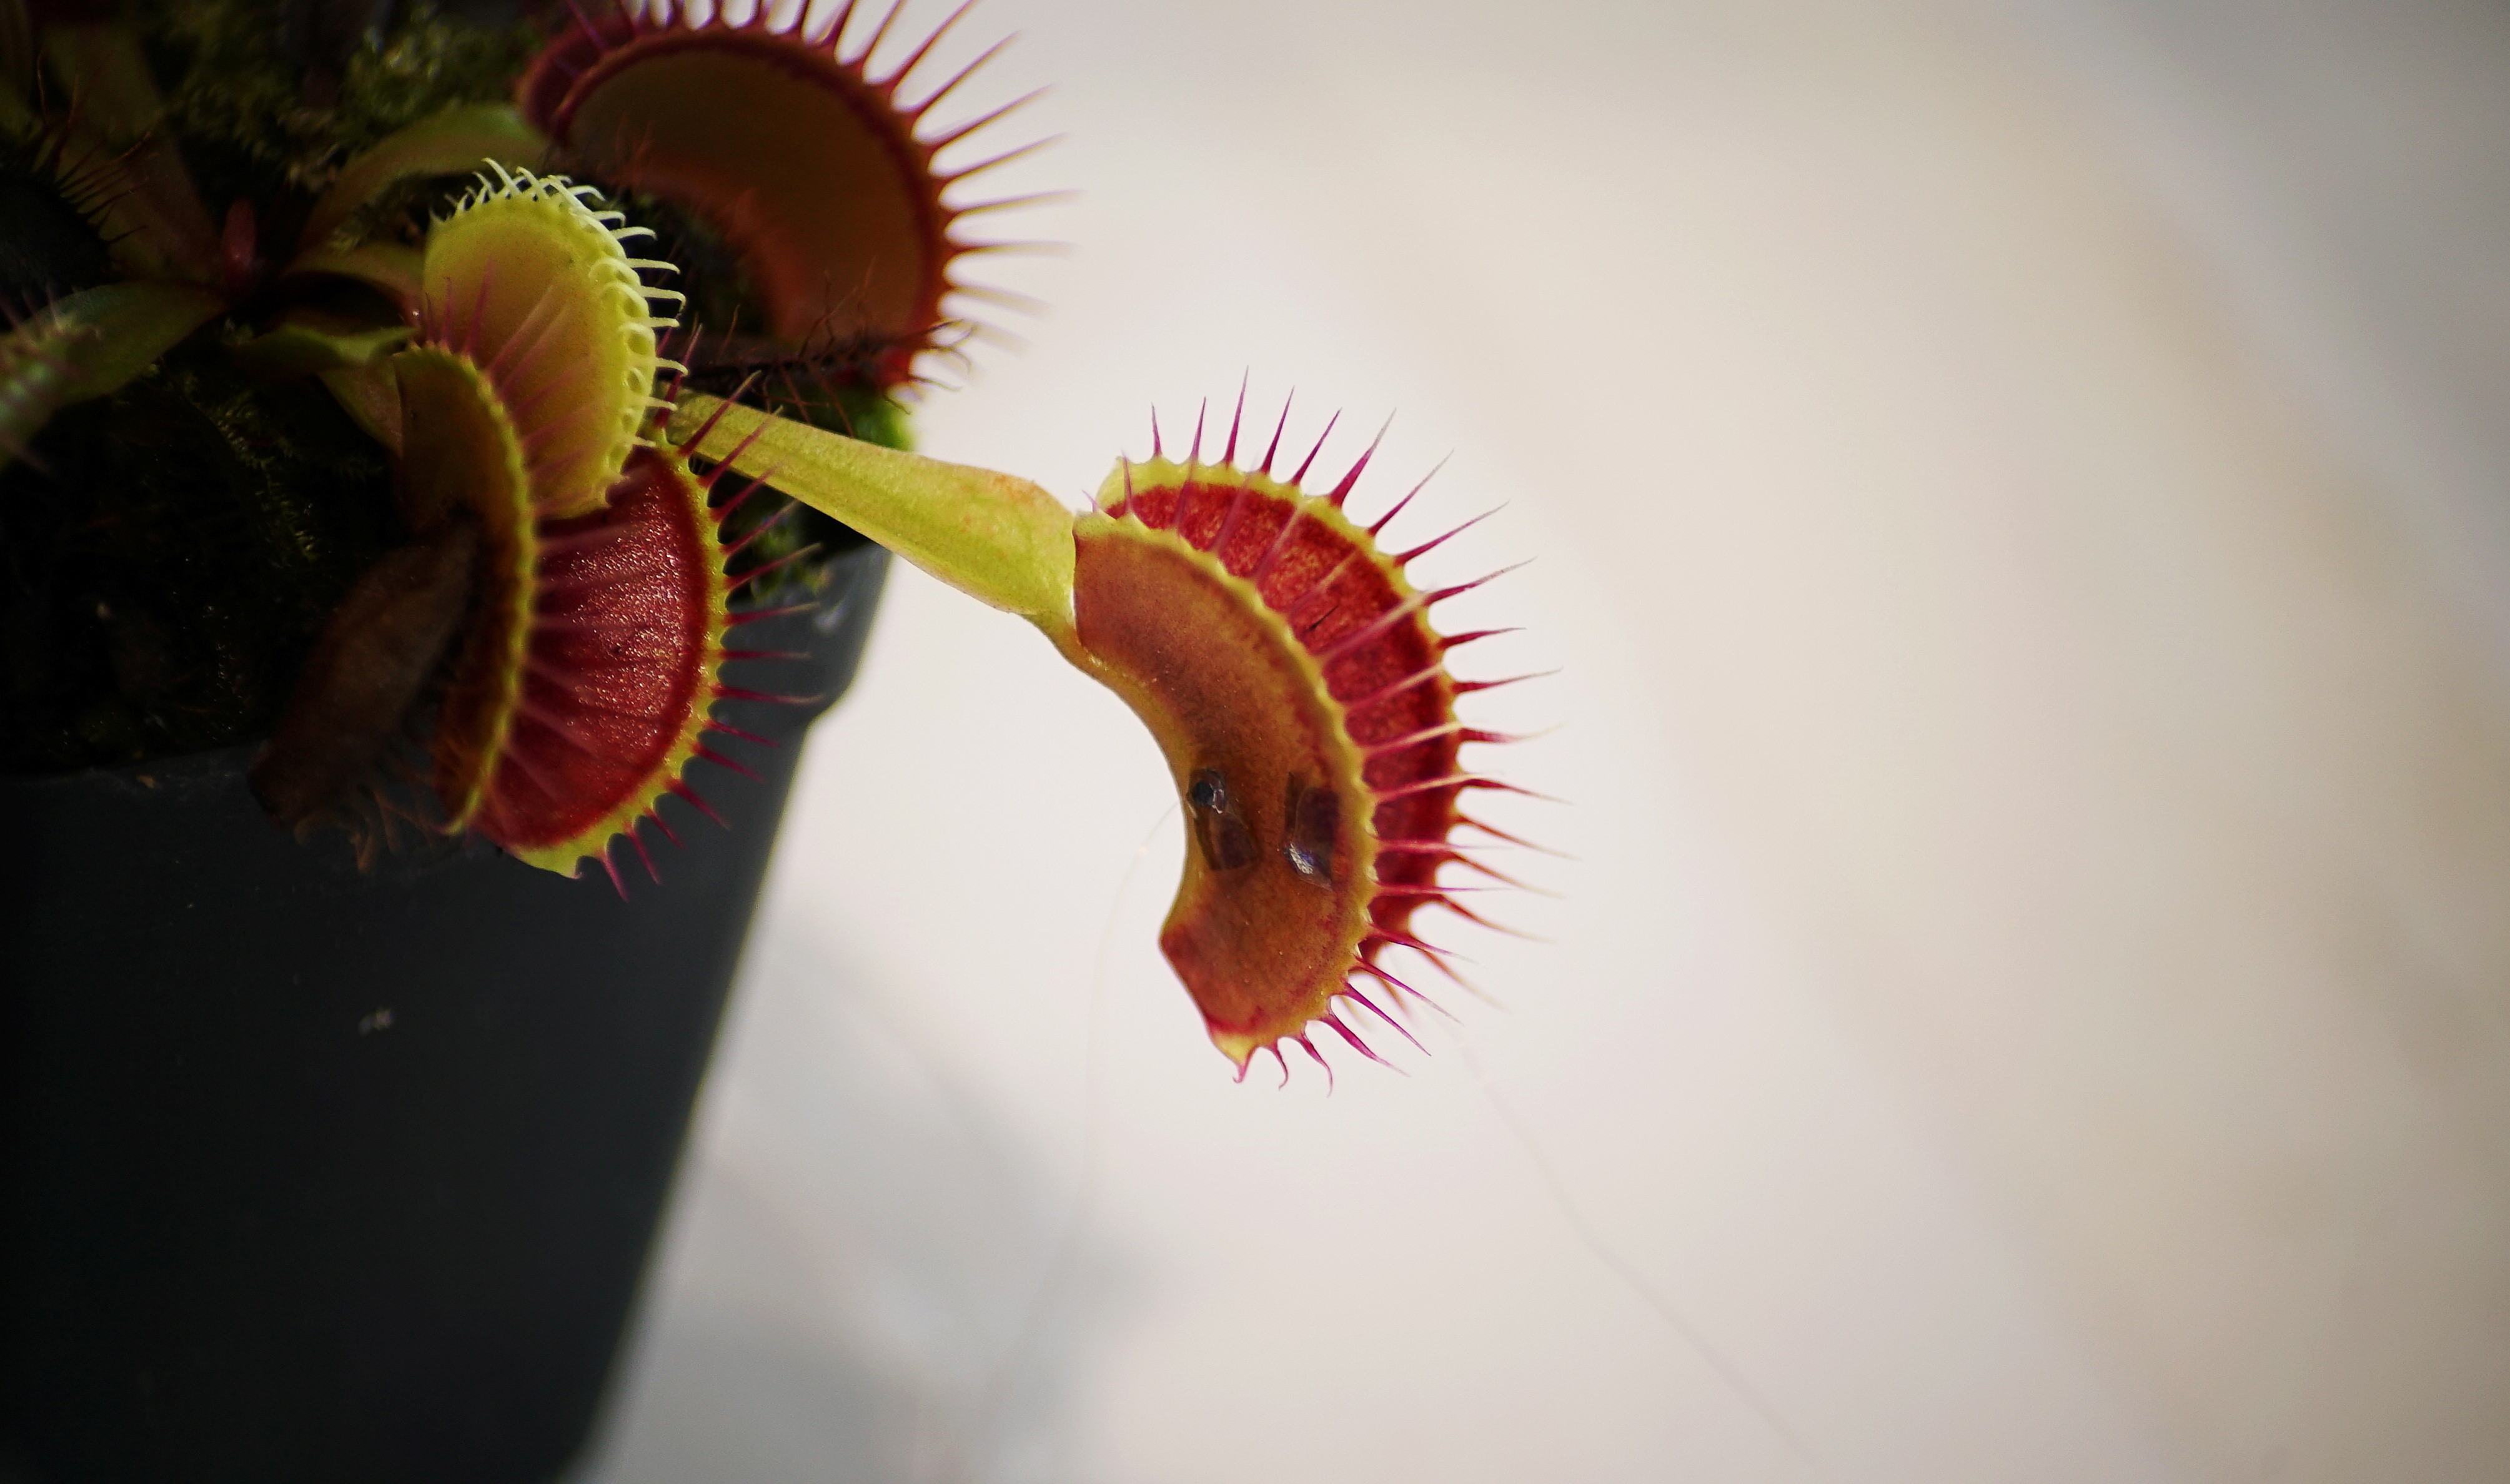 image of a Venus flytrap rigged with two electrodes during an experiment in a lab at Nanyang Technological University in Singapore